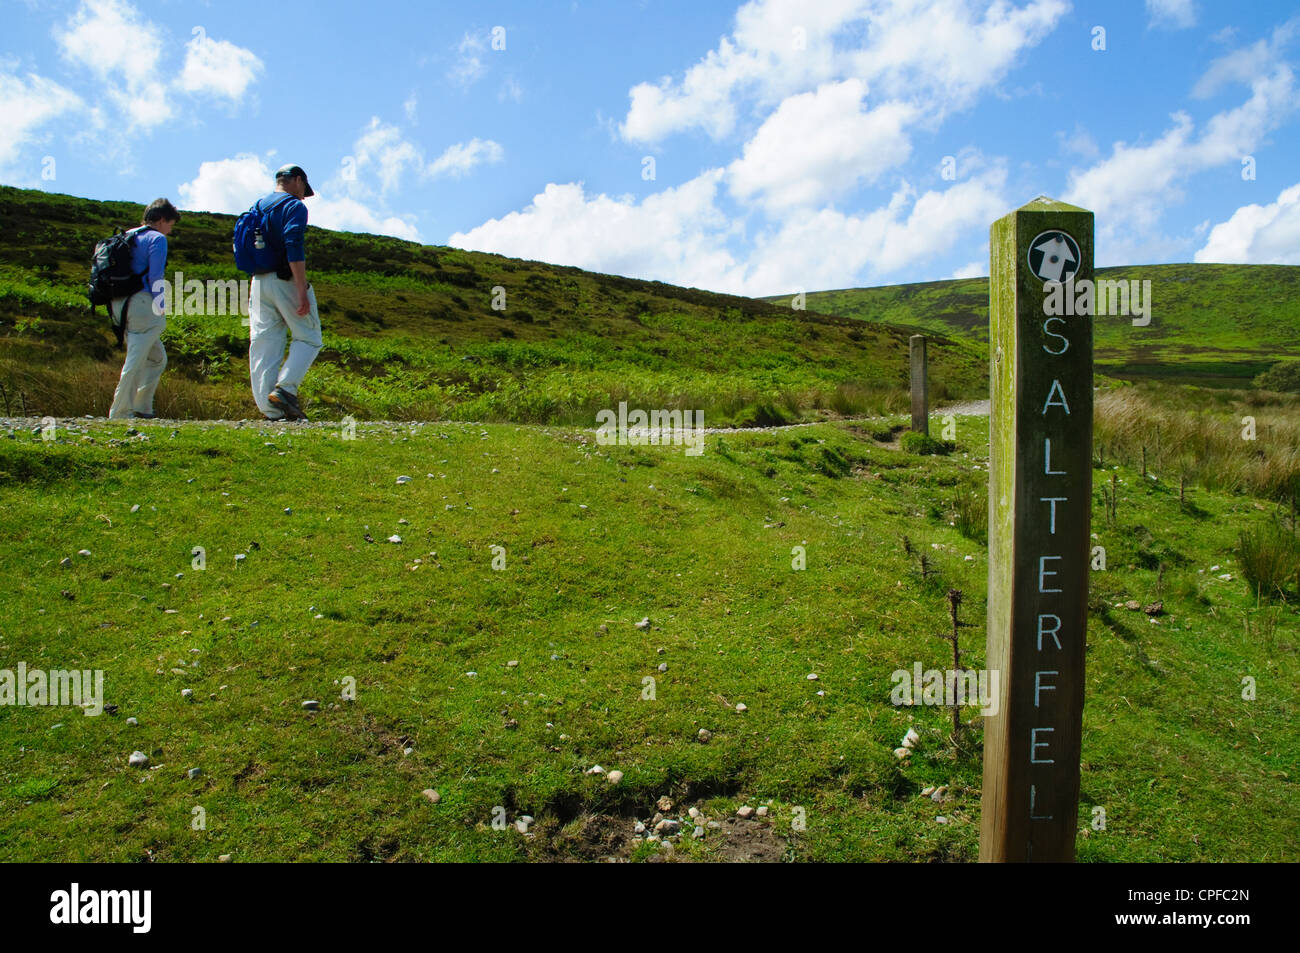 Walkers on Salter Fell track in the Forest of Bowland AONB - Stock Image